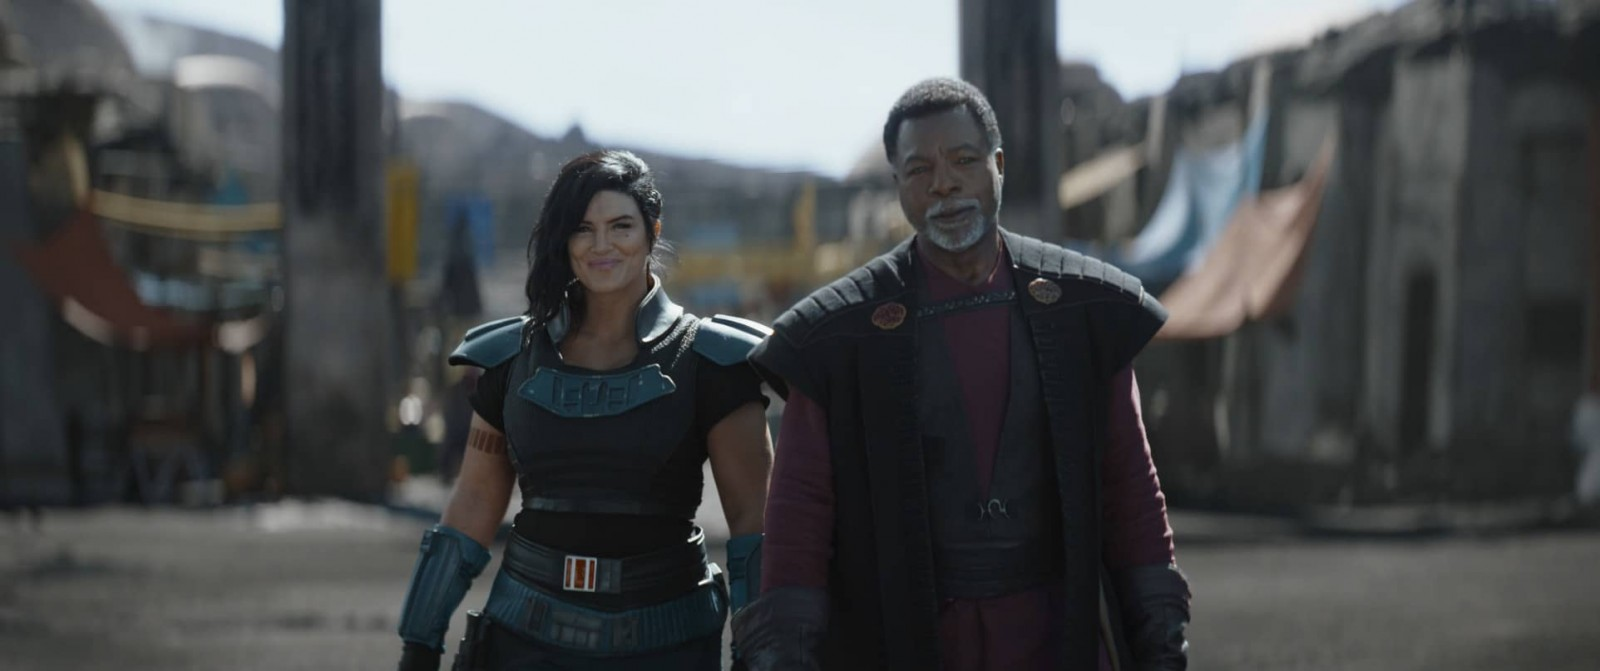 Gina Carano is Cara Dune and Carl Weathers is Greef Karga in Lucasfilm's THE MANDALORIAN, season two, exclusively on Disney+. © 2020 Lucasfilm Ltd. & ™. All Rights Reserved.